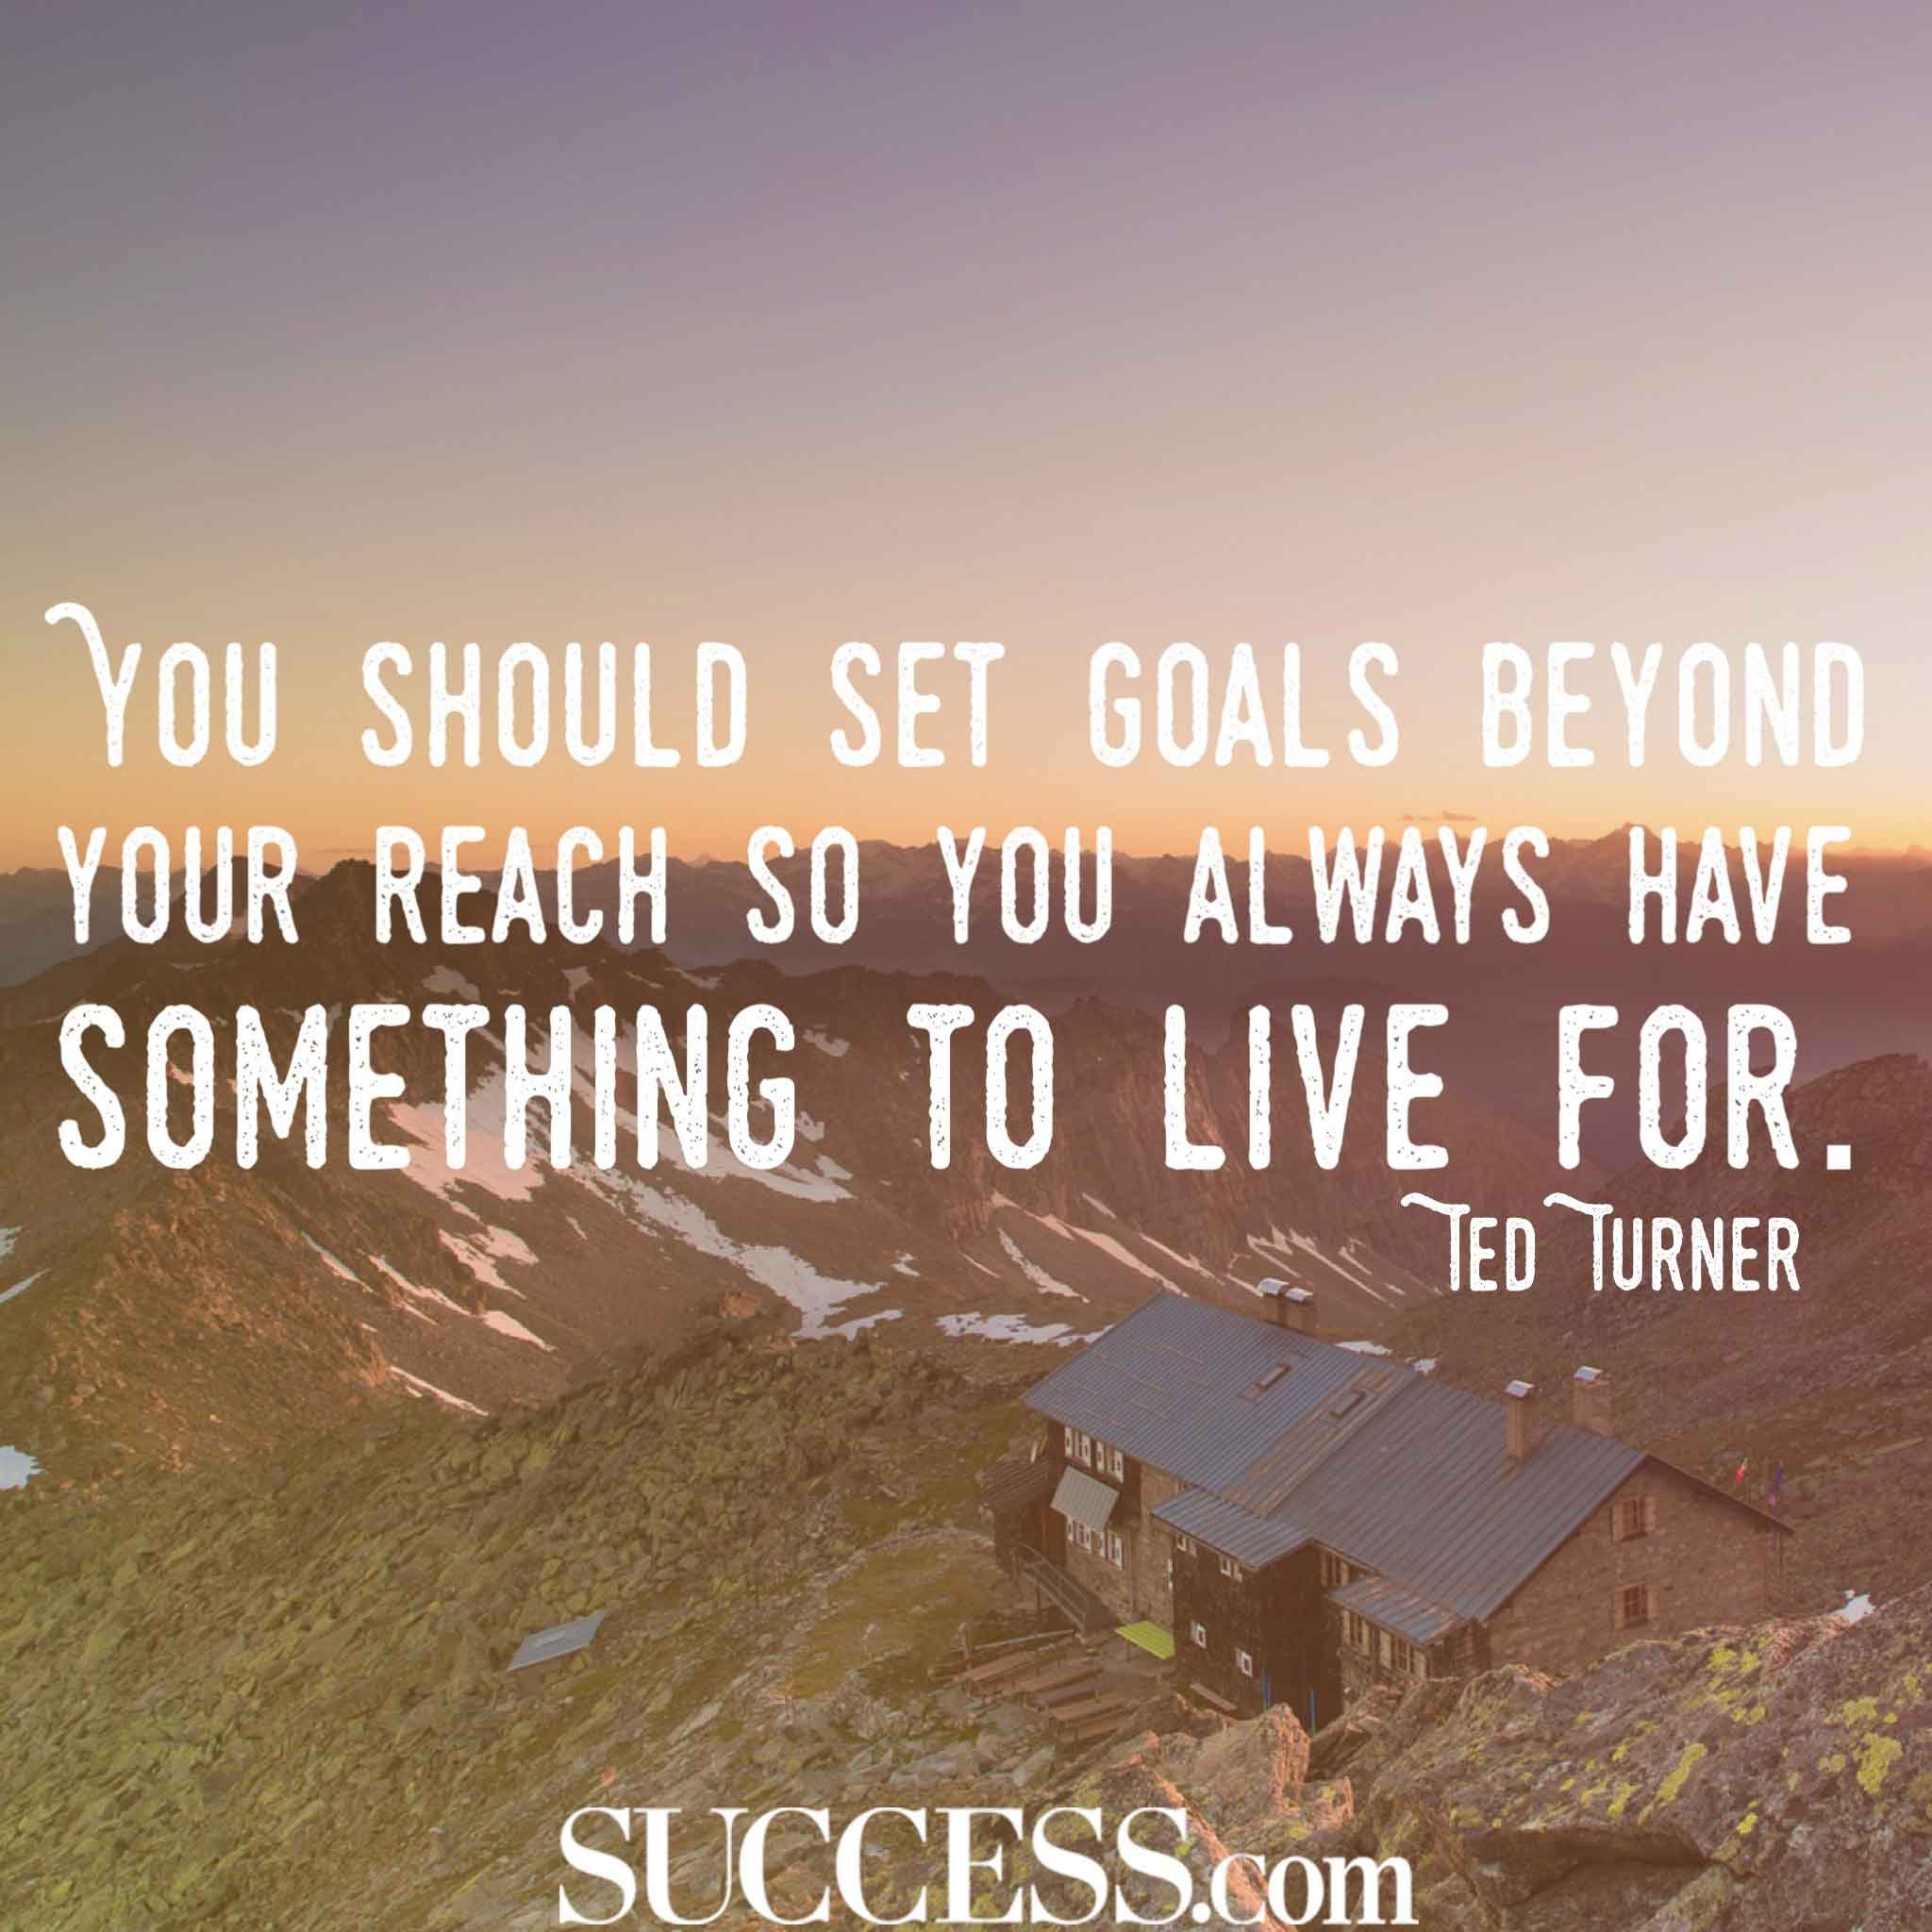 Motivational Quotes About Successful Goal Setting - Quotes about achieving goals and dreams